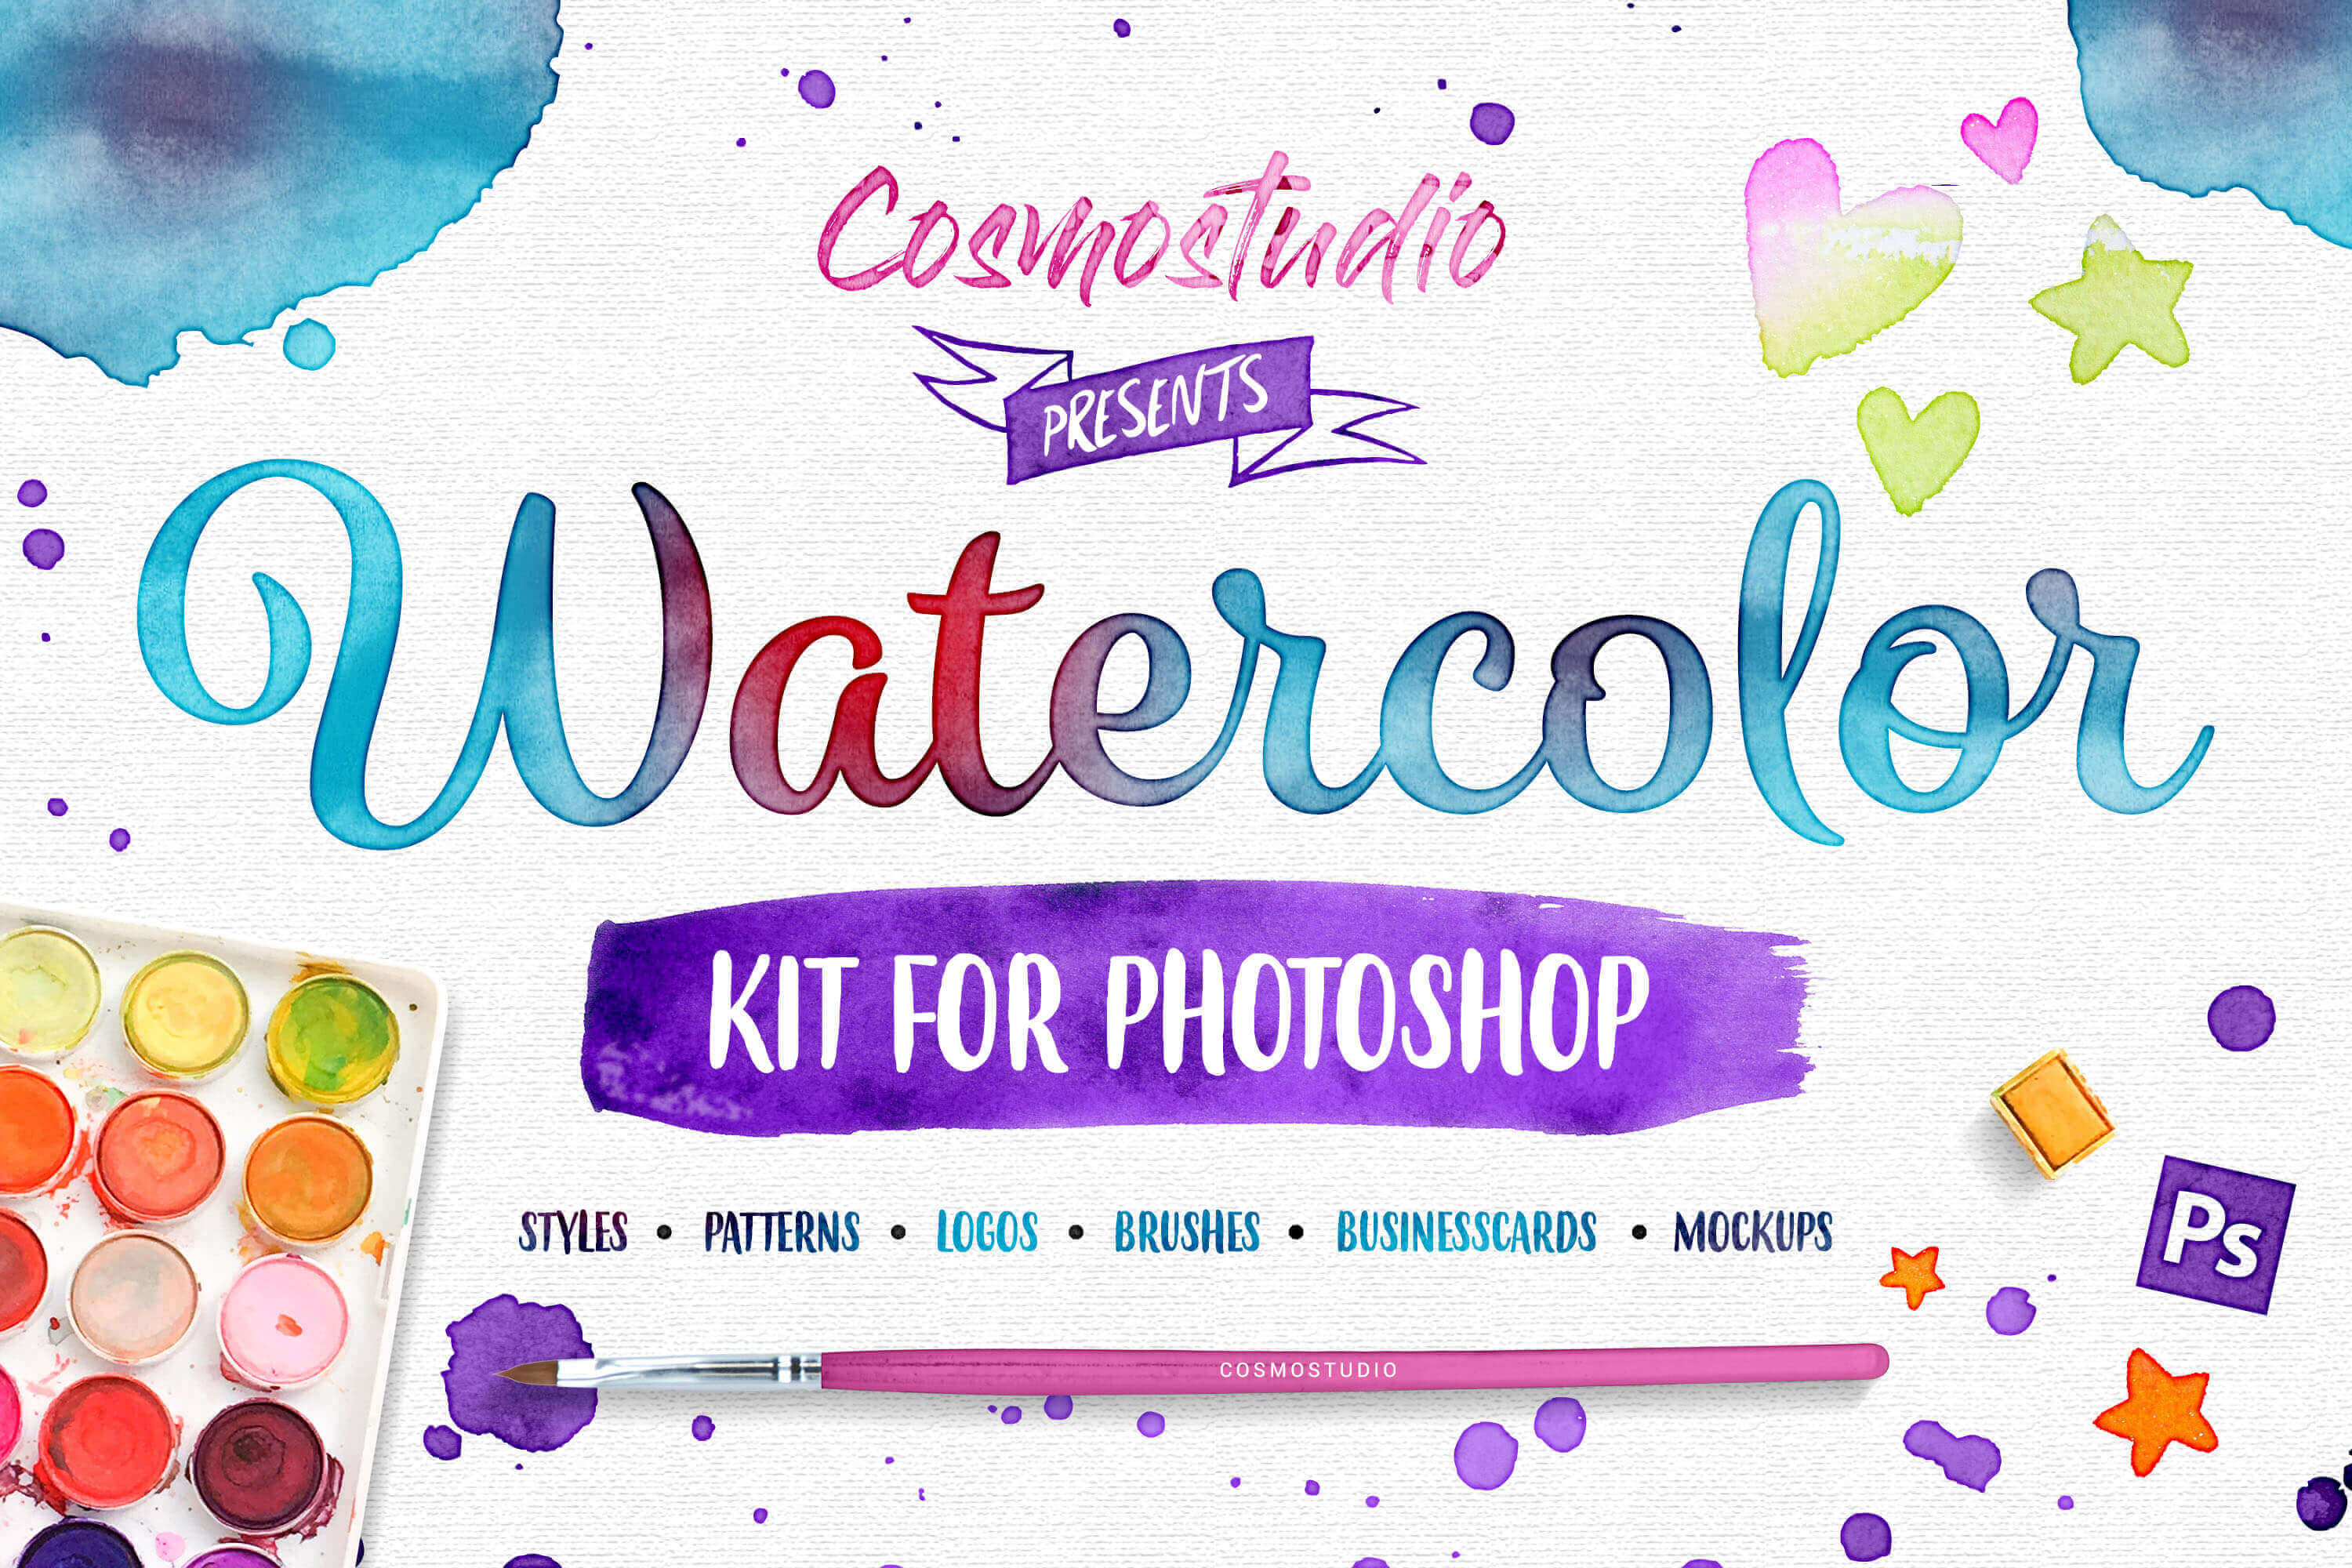 Gorgeous Watercolor Kit for Photoshop – only $9!